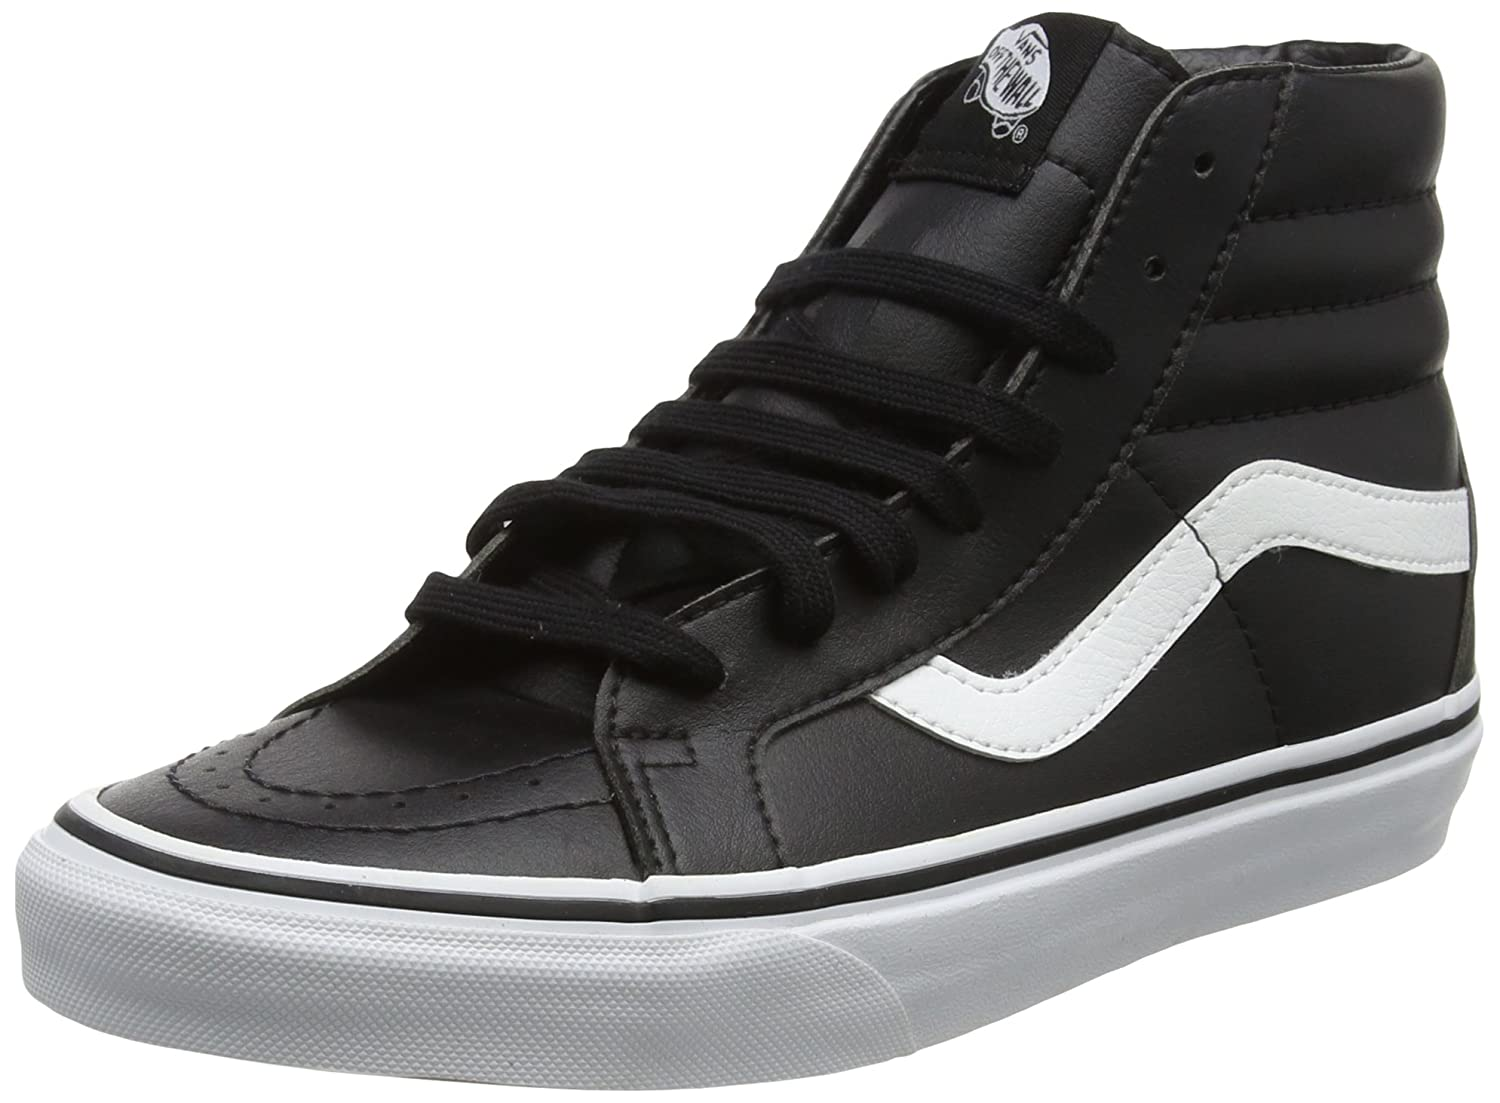 TALLA 36.5 EU. Vans Sk8-hi Reissue Leather, Zapatillas Unisex Adulto